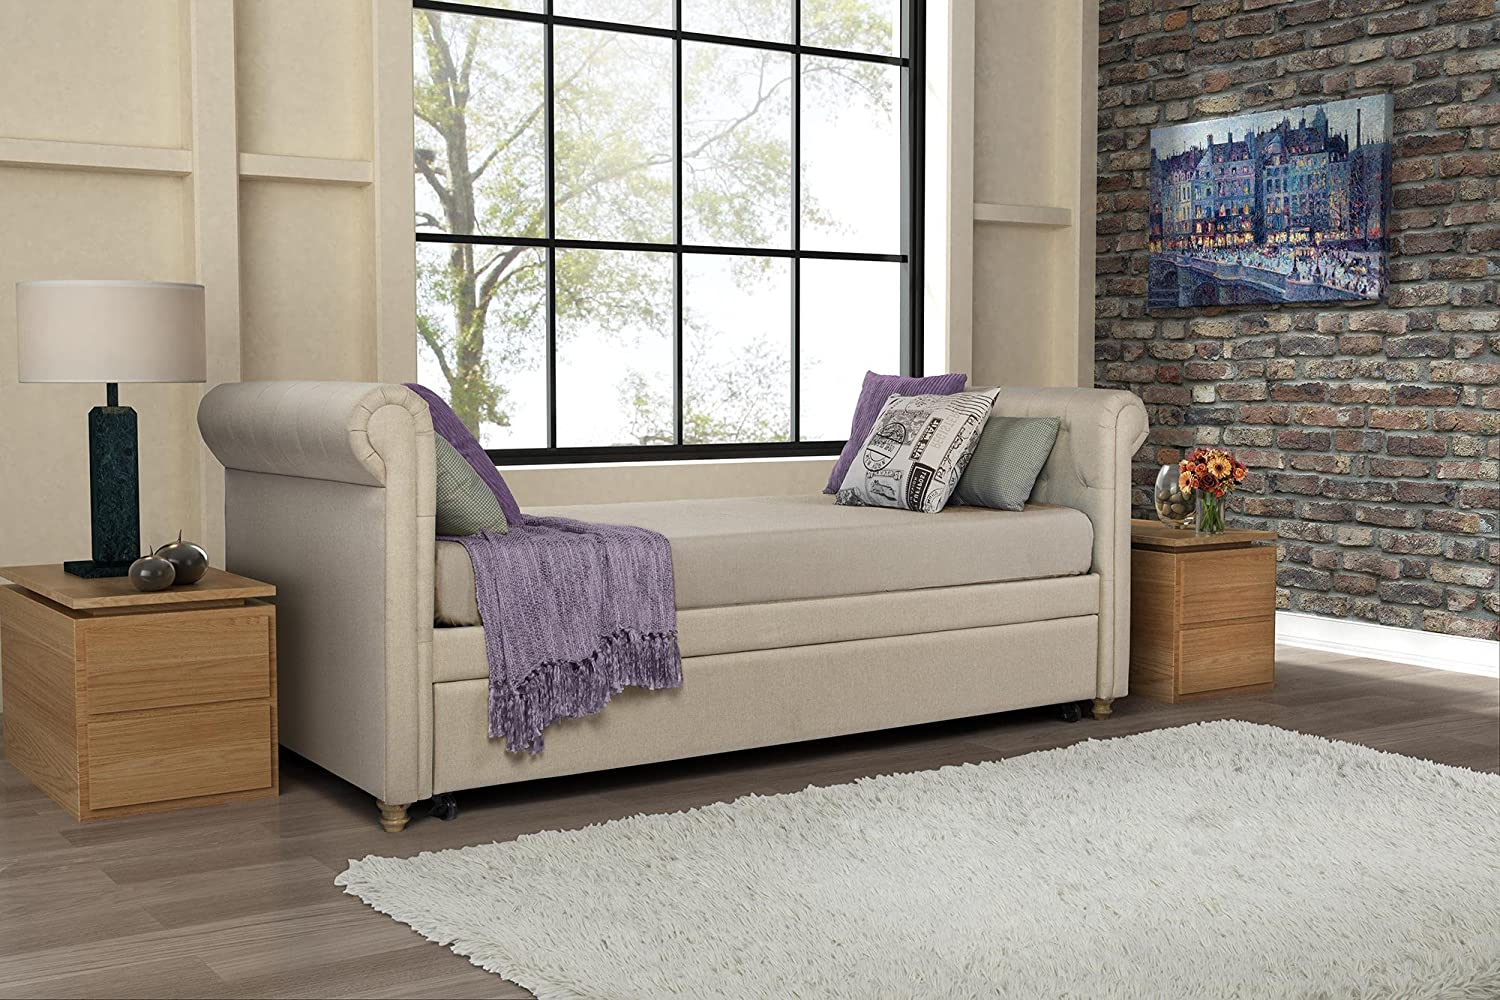 amazoncom dhp giada upholstered daybed and trundle classic design twin size tan kitchen u0026 dining